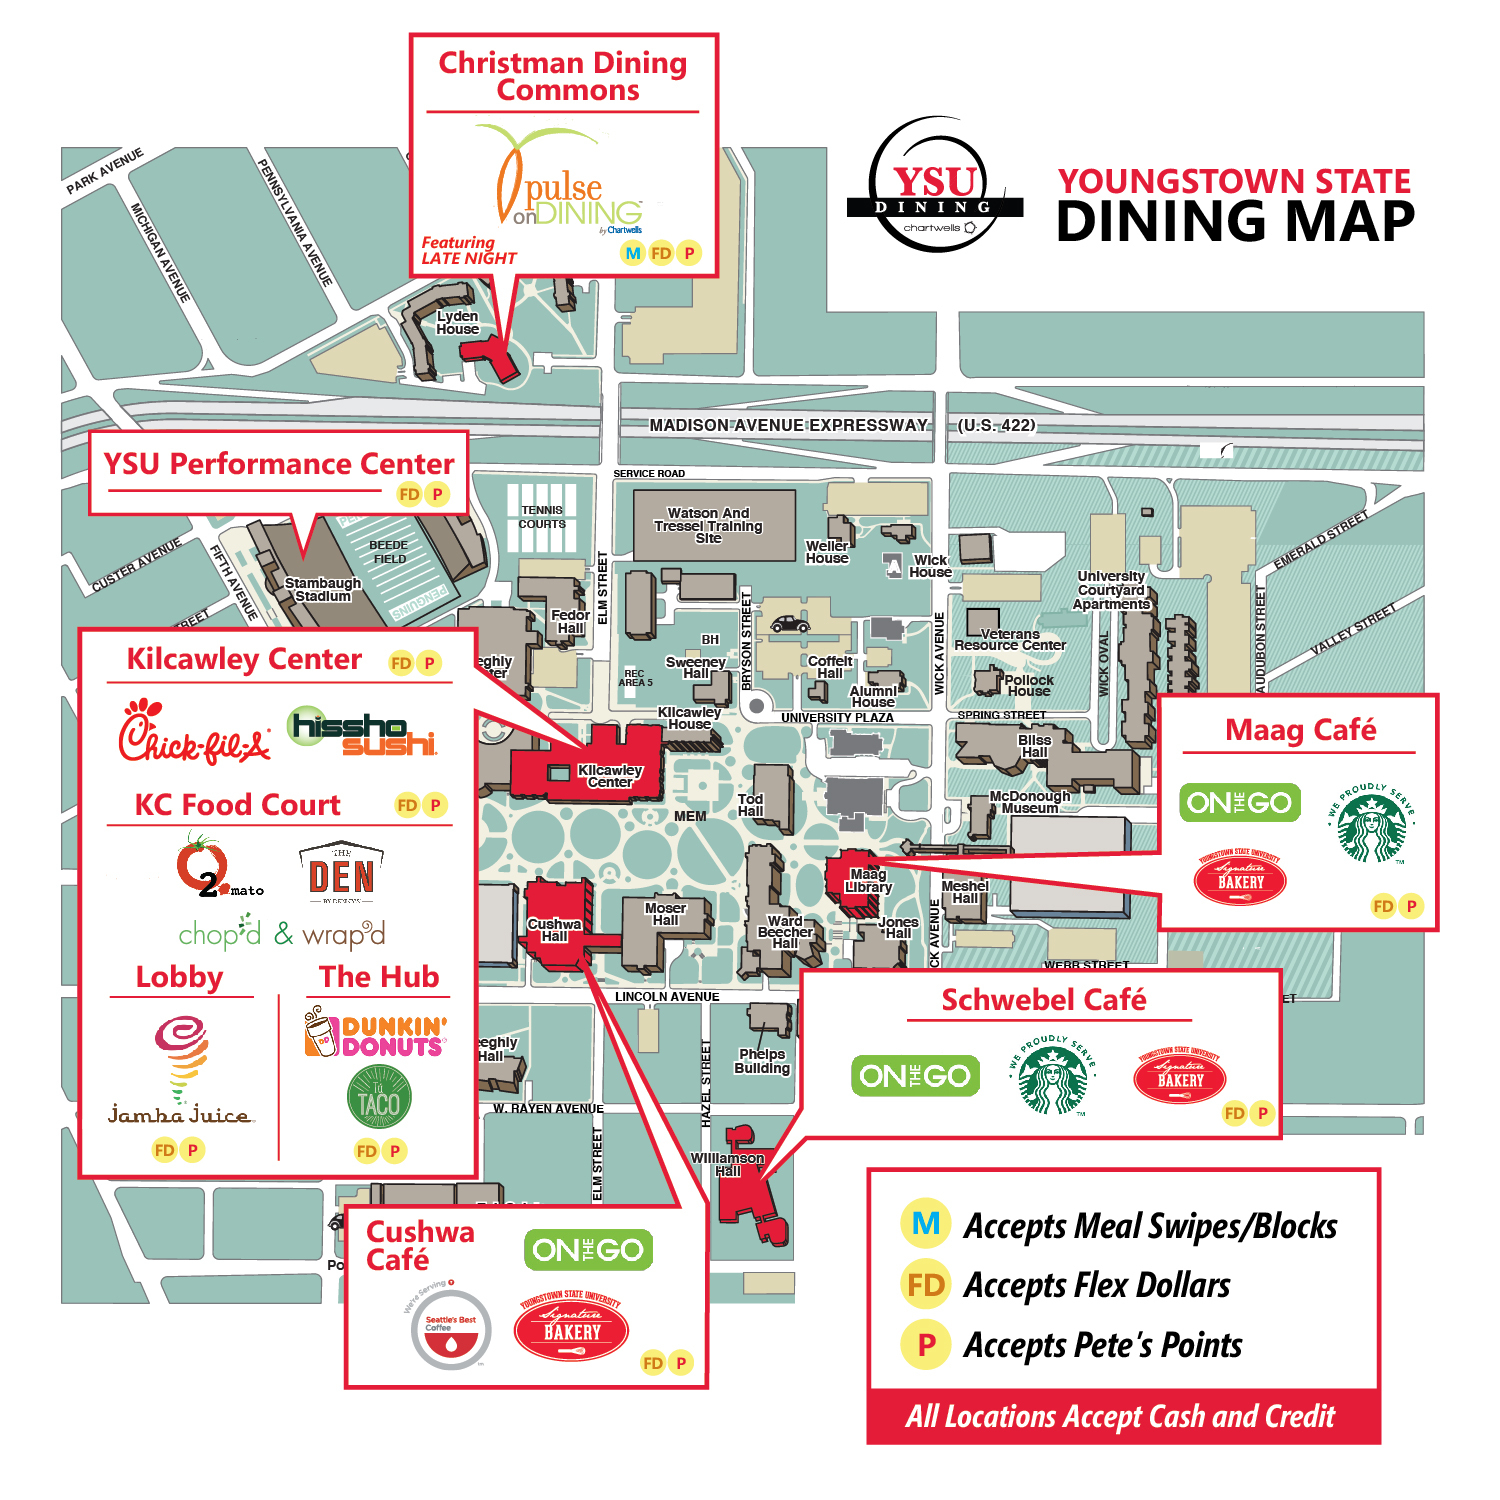 Dine On Campus at Youngstown State University || YSU Dining Map Youngstown University Campus Map on miss valley state u campus map, youngstown airport map, youngstown state university parking, ysu campus map, pc campus map, asu campus map,